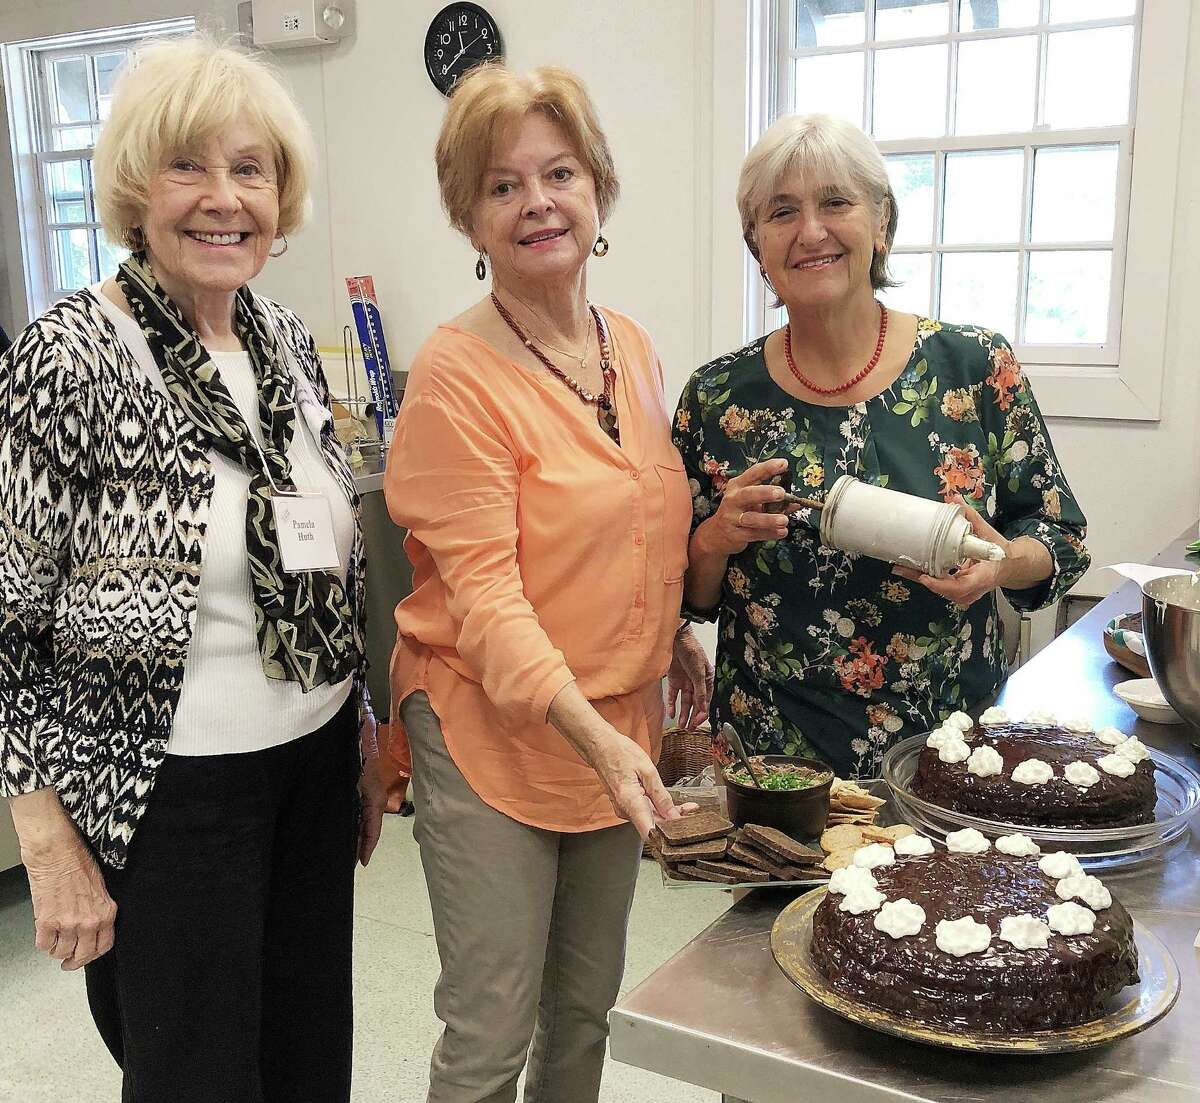 Pamela Huth, left, Ruth Morgan and Liz Orteig, members of the Eating and Tasting Society of the Encore Club of New Canaan, prepare sachertortes for their monthly luncheon.